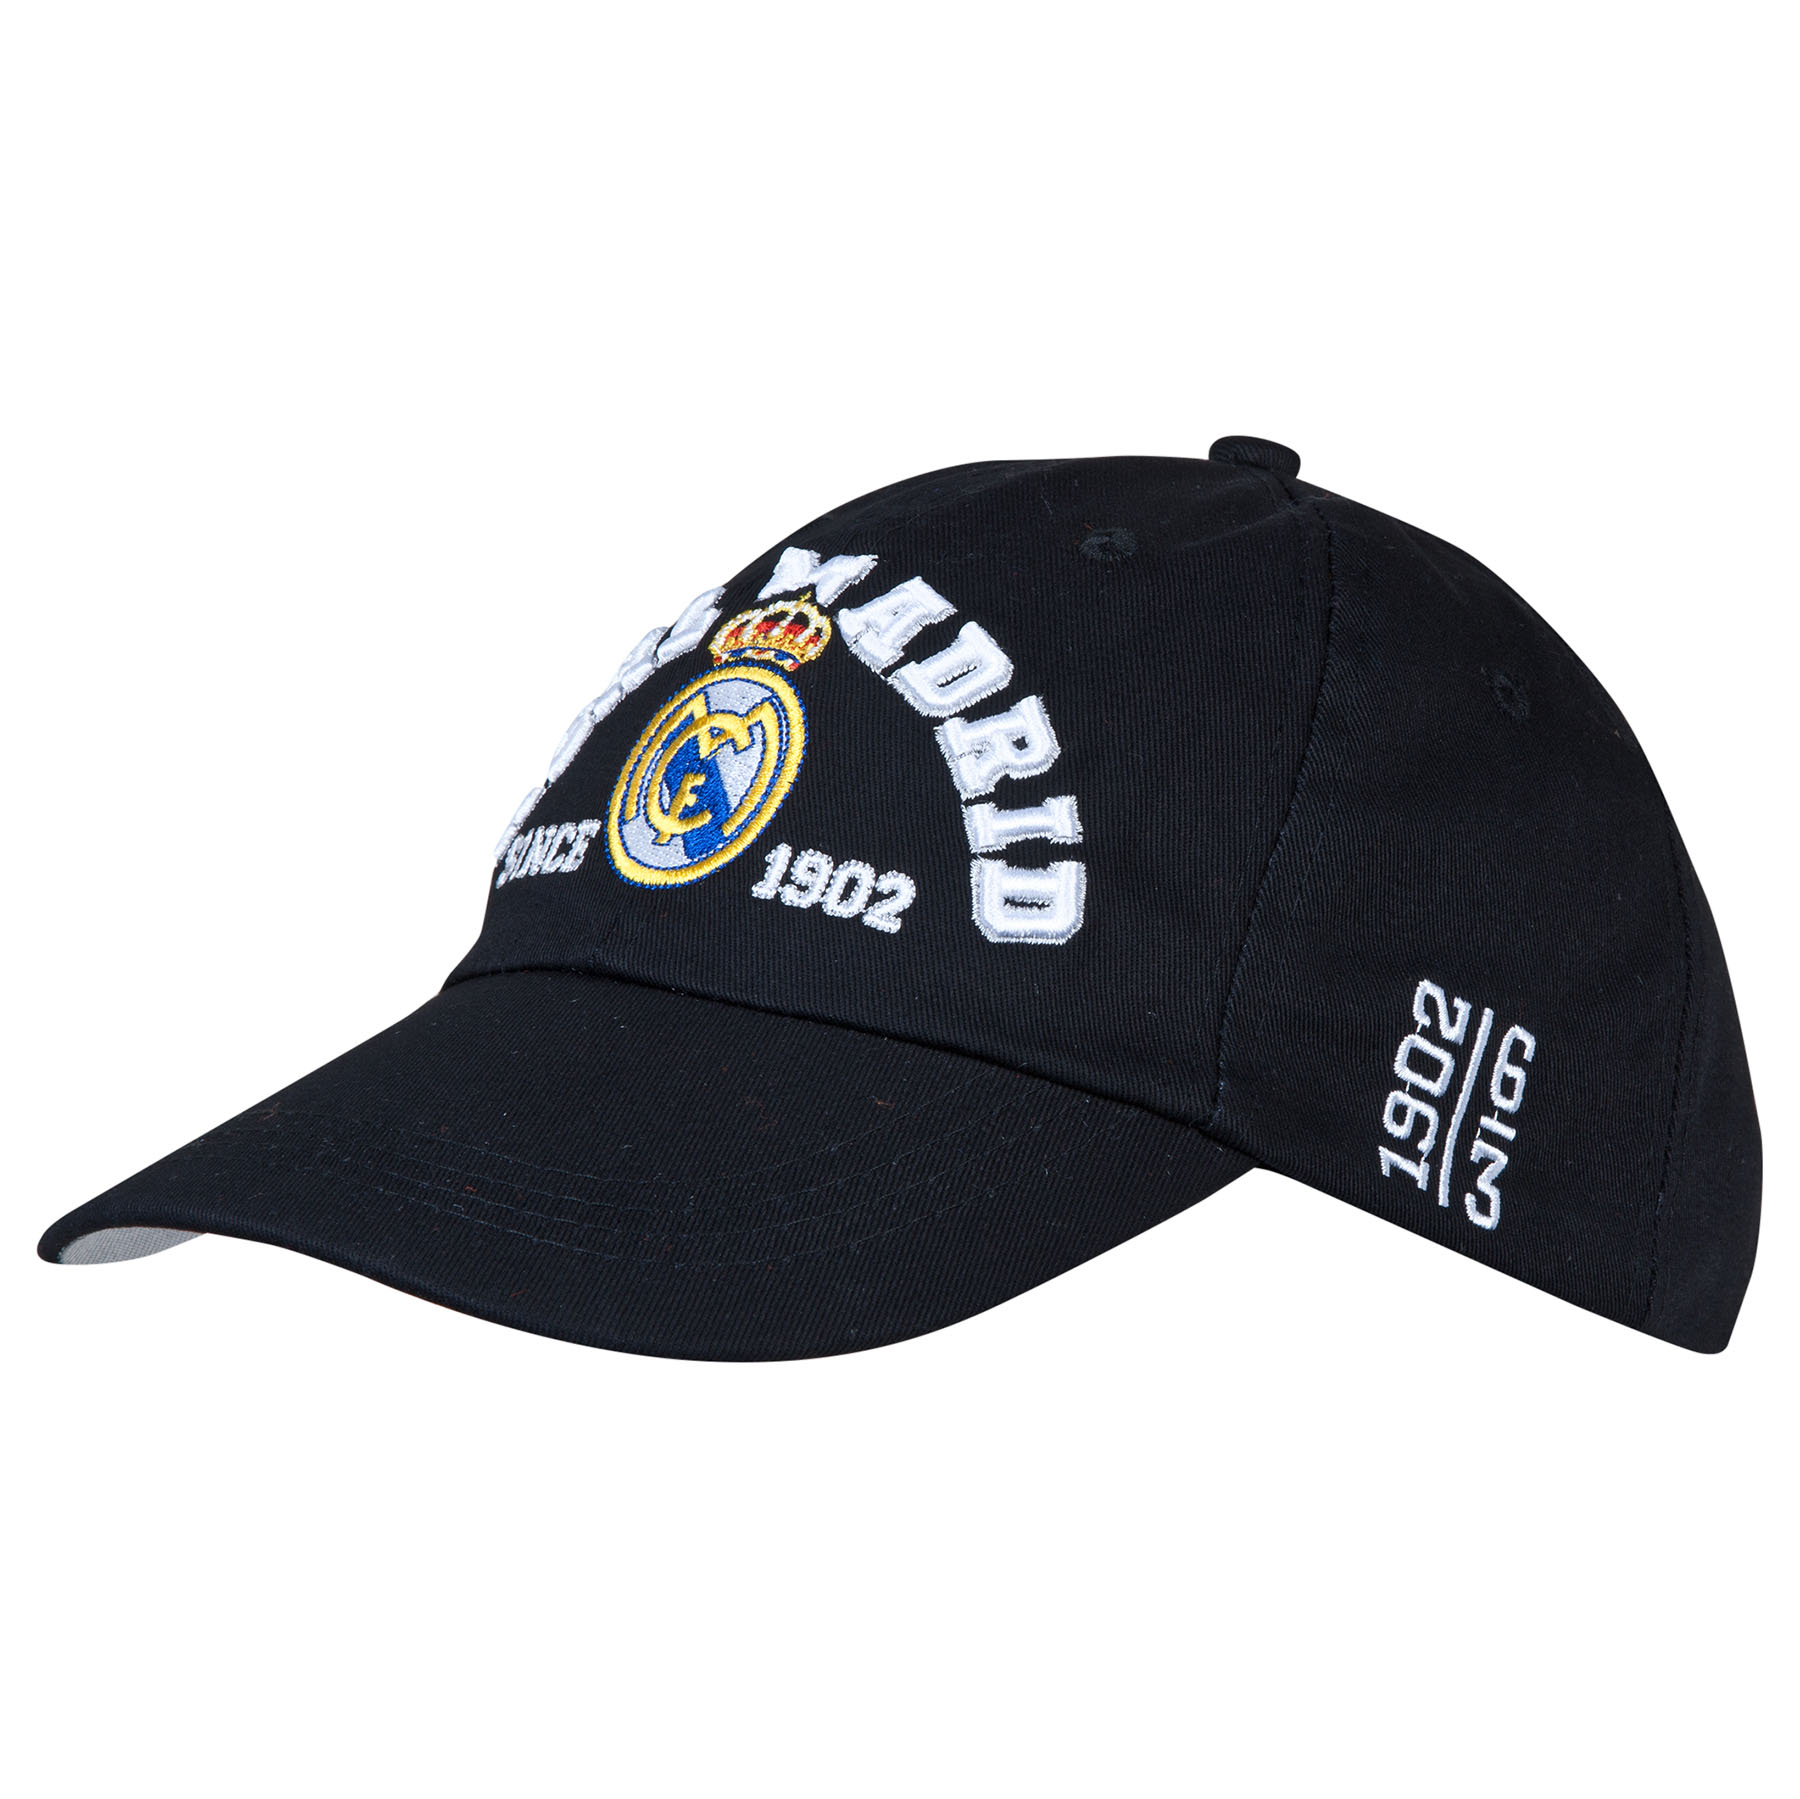 Real Madrid Crest Cap - Black - Adult